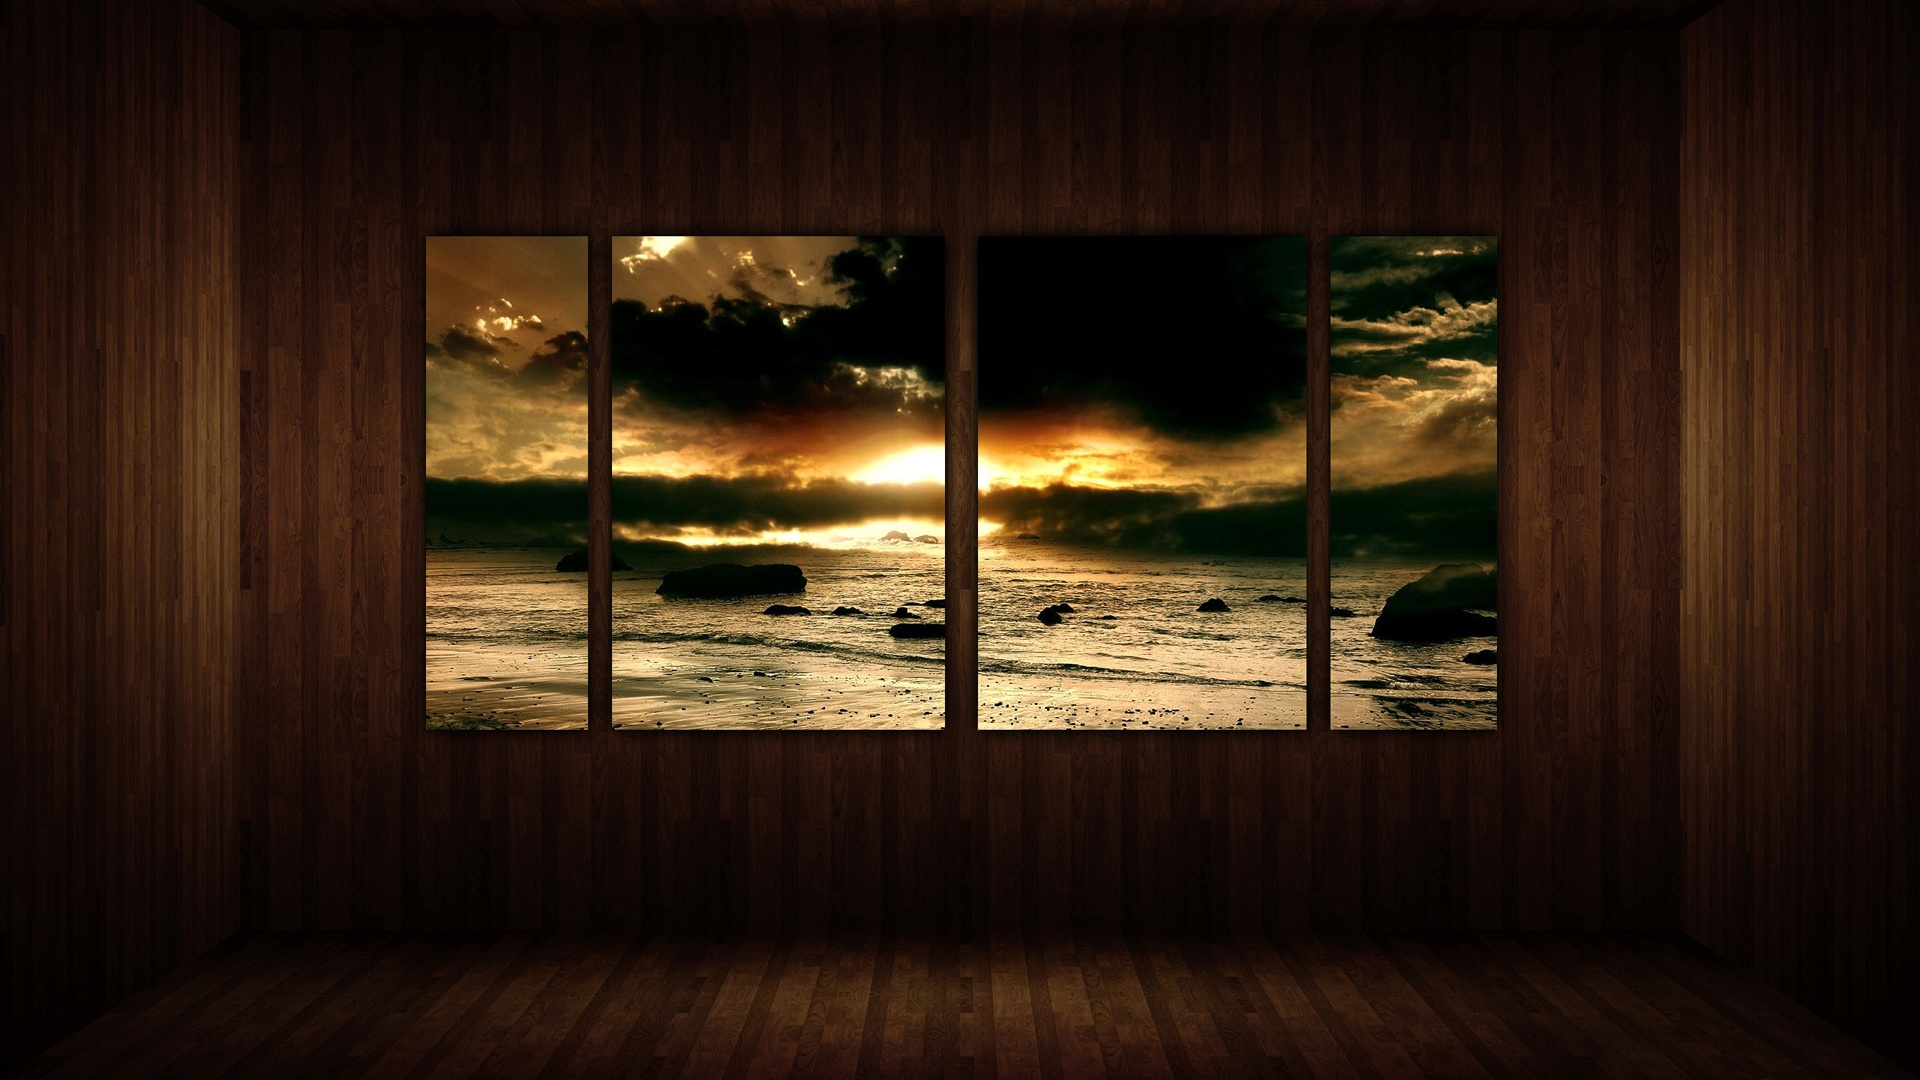 Wall Art Hd Pic : Living room view by paullus on deviantart